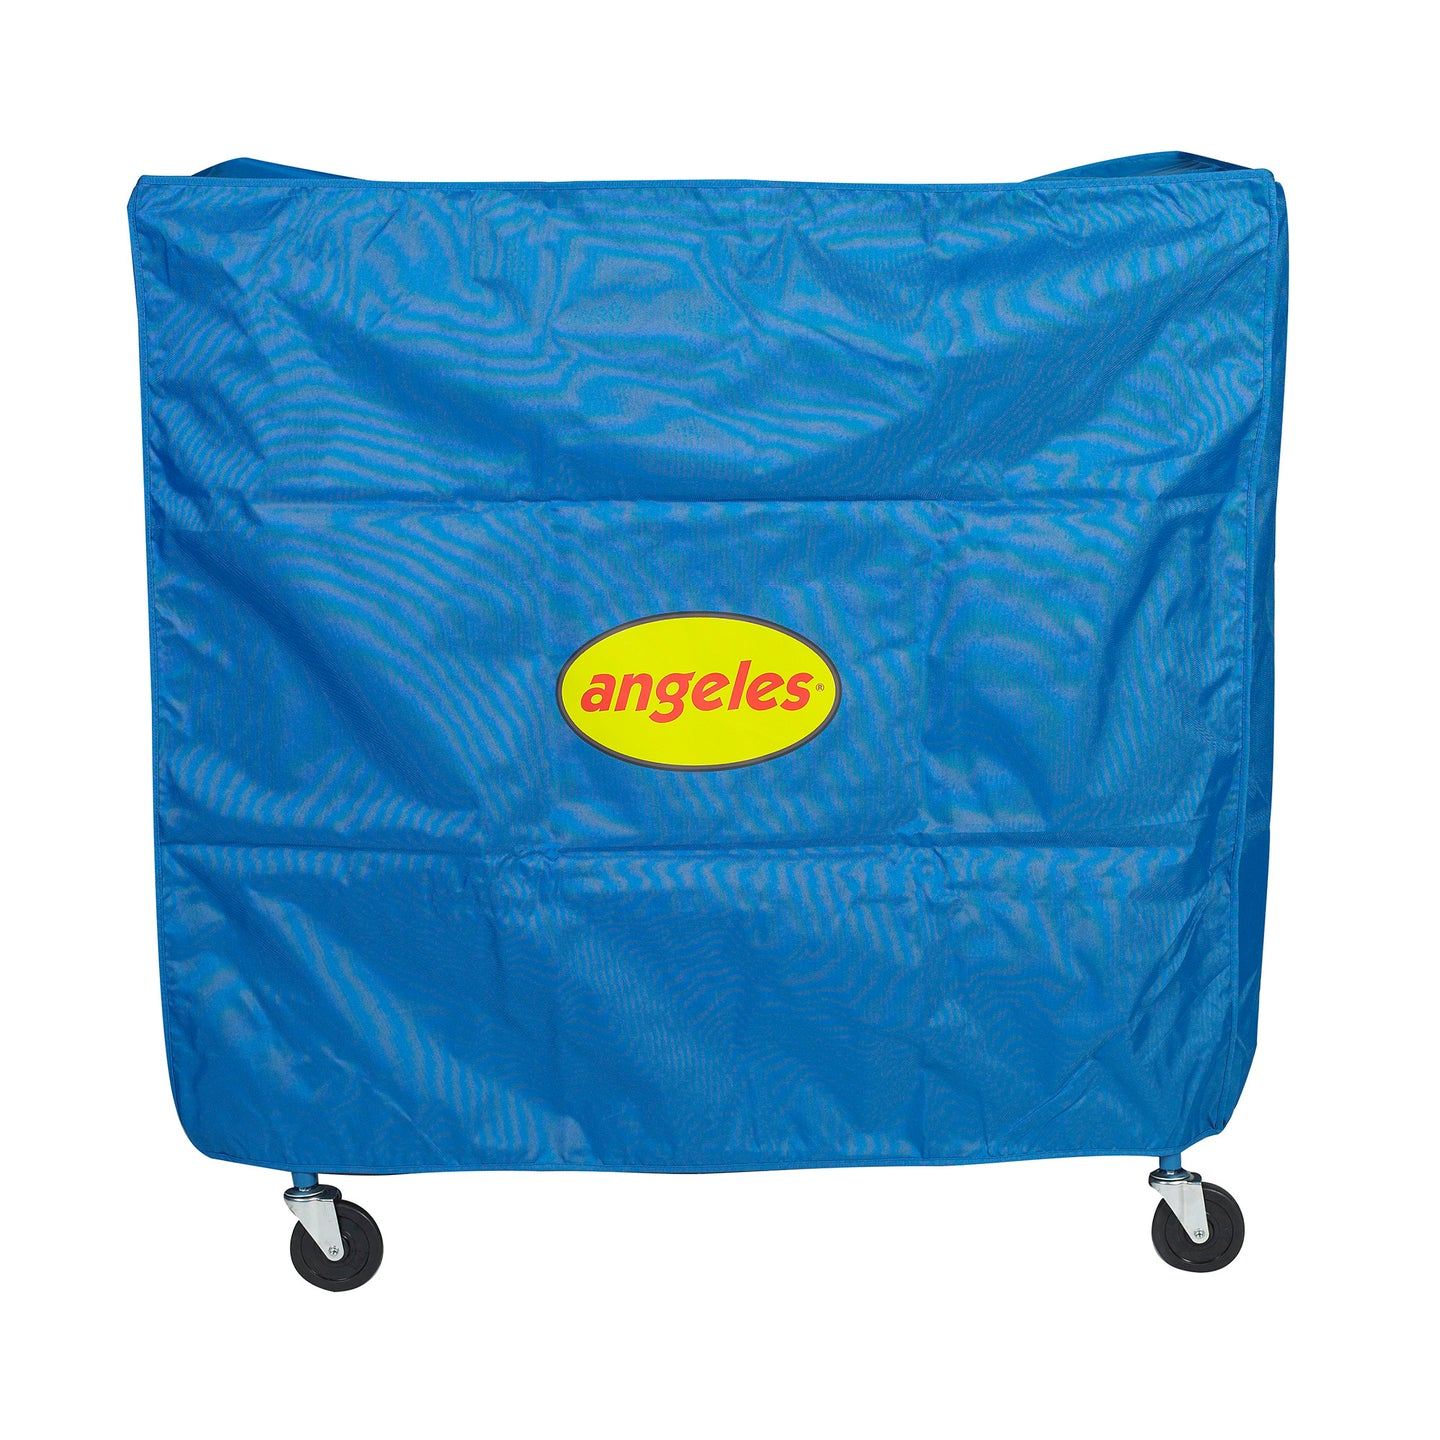 Activity Cart Cover by Angeles Fits Cart # AFB7910 - Welcome 2 My Crib